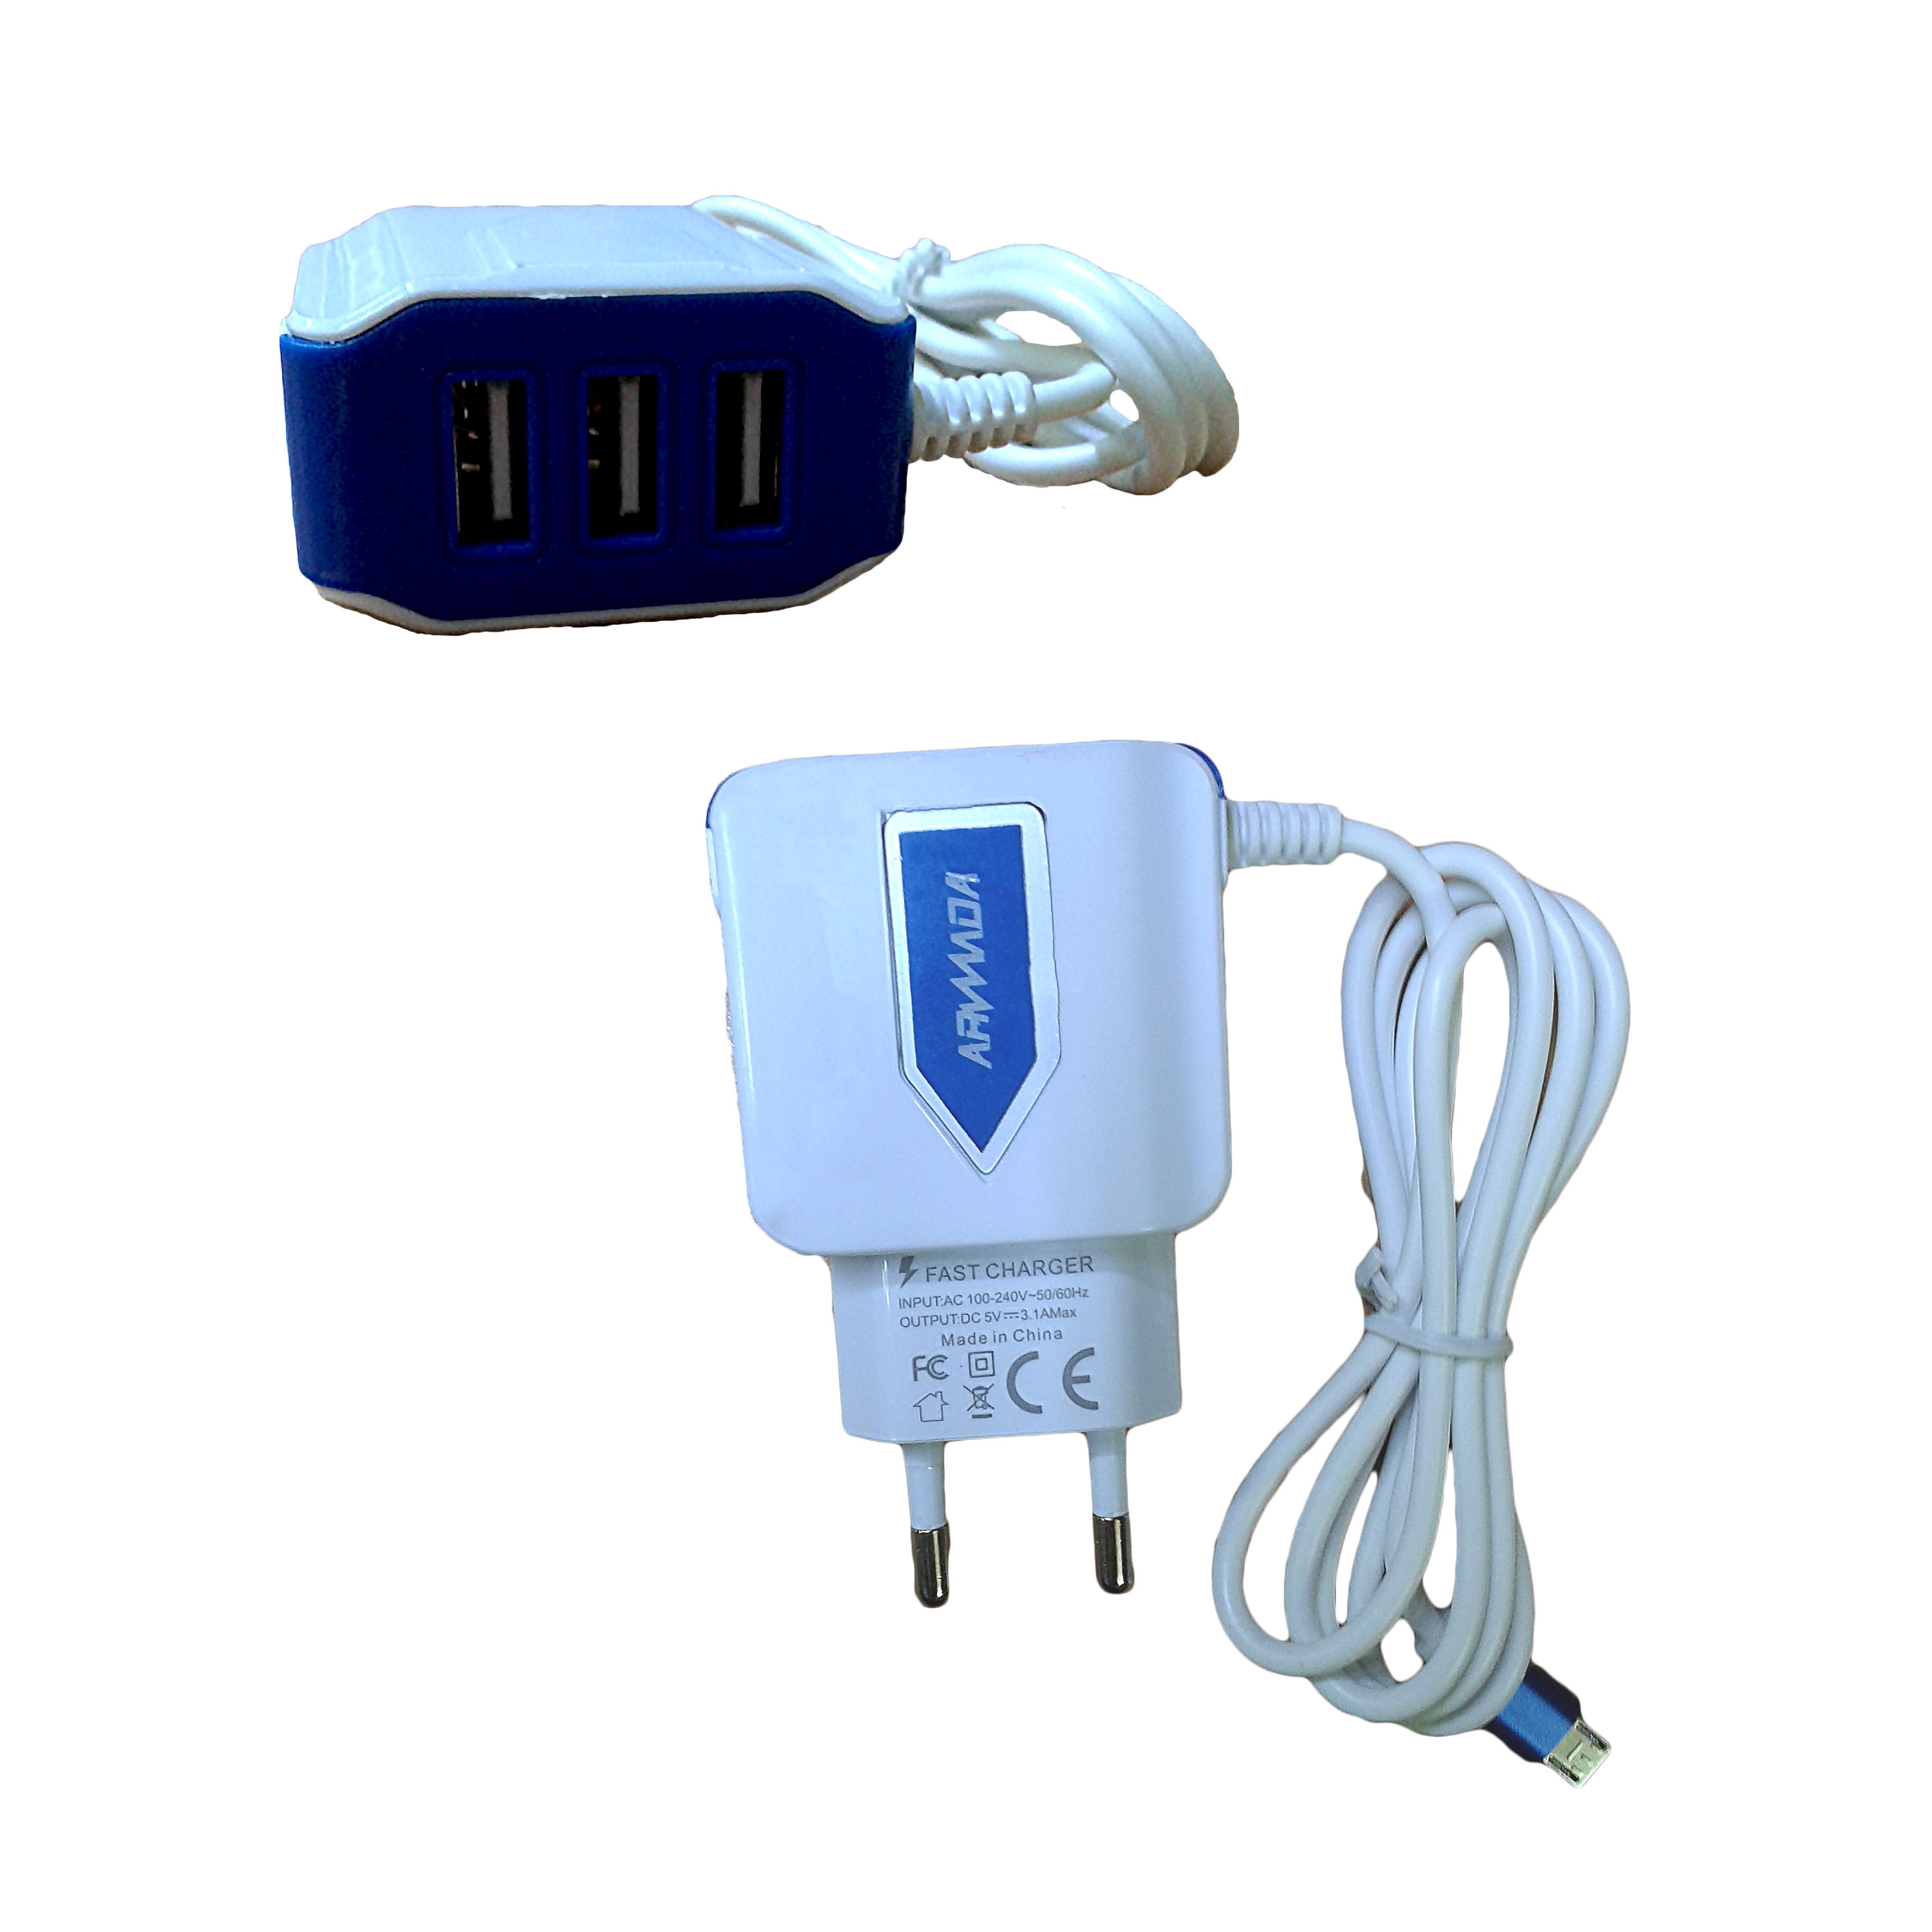 CHARGER 3USB FOR MOBILE&TAB ANDROID -ARMADA C001  مع كبل ,Smartphones & Tab Chargers